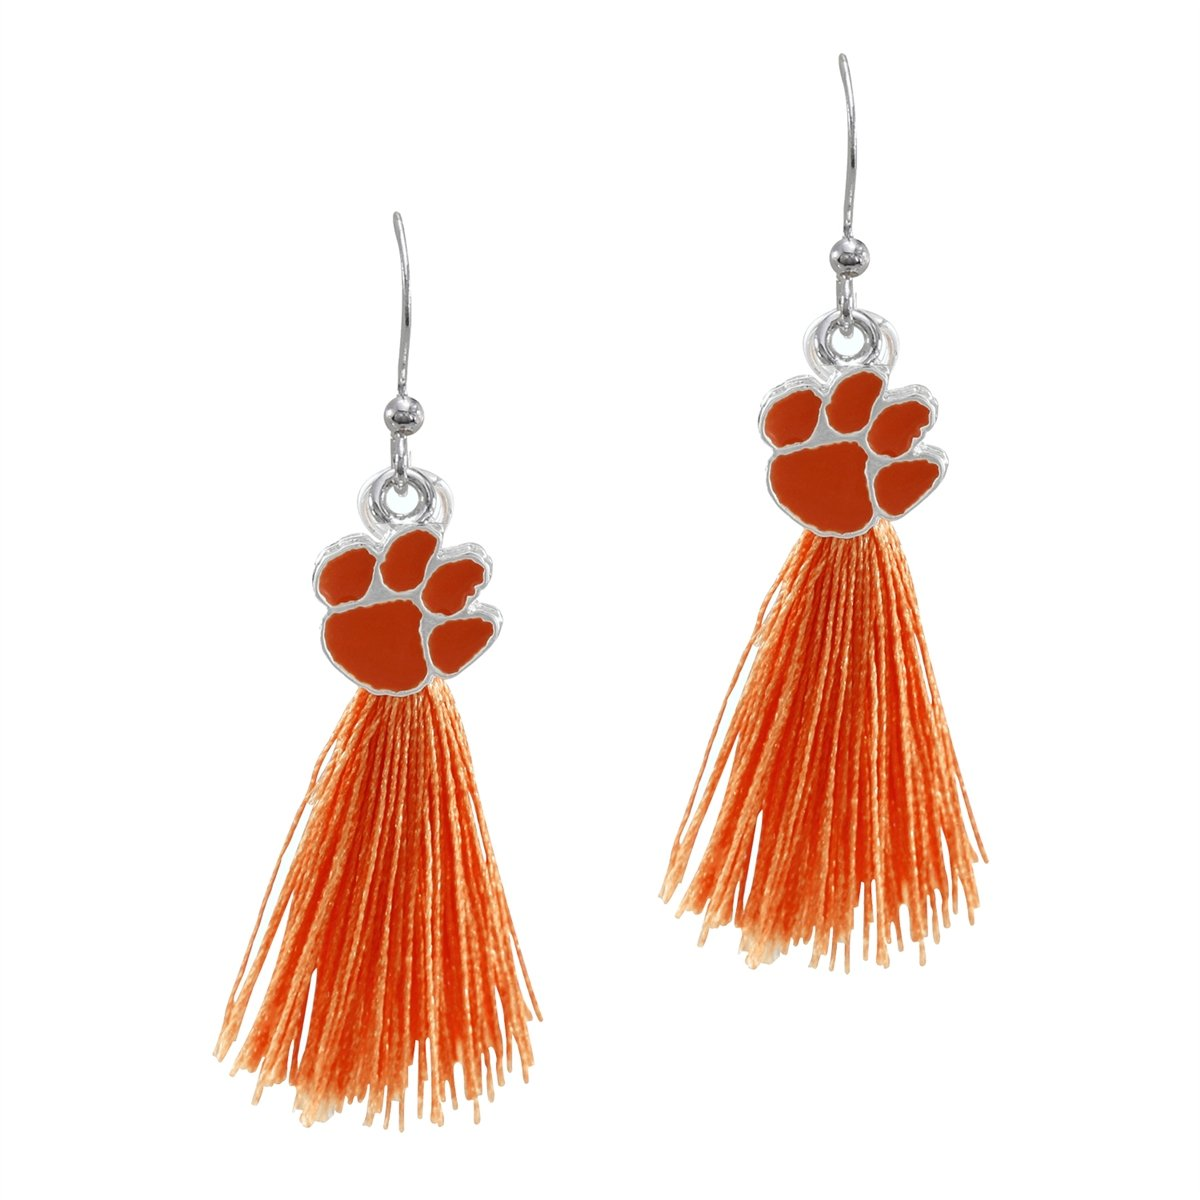 Bambi Tassel Charm Earrings With Orange Tassels and Paw - Mr. Knickerbocker